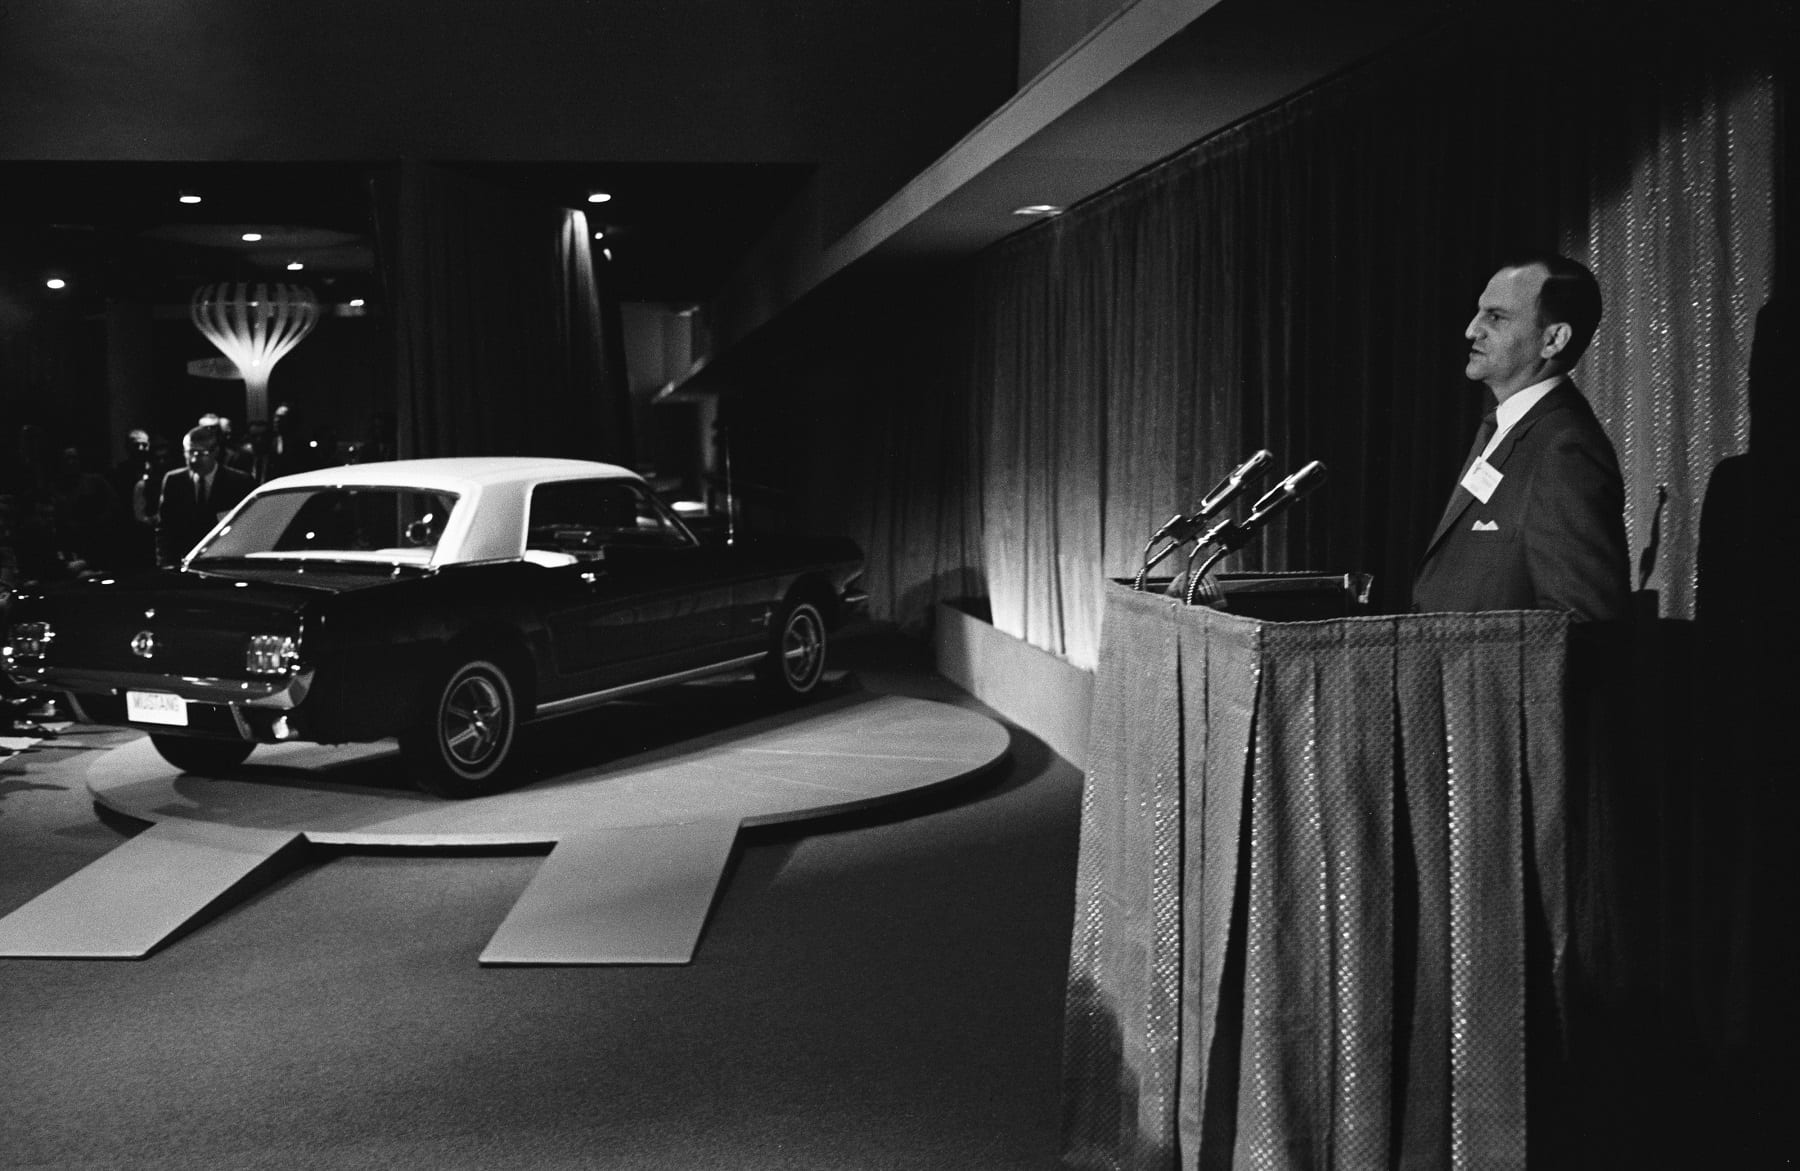 Lee Iacocca introduces the new 1965 Ford Mustang to the media in the Ford Pavilion at the 1964 World's Fair in New York.